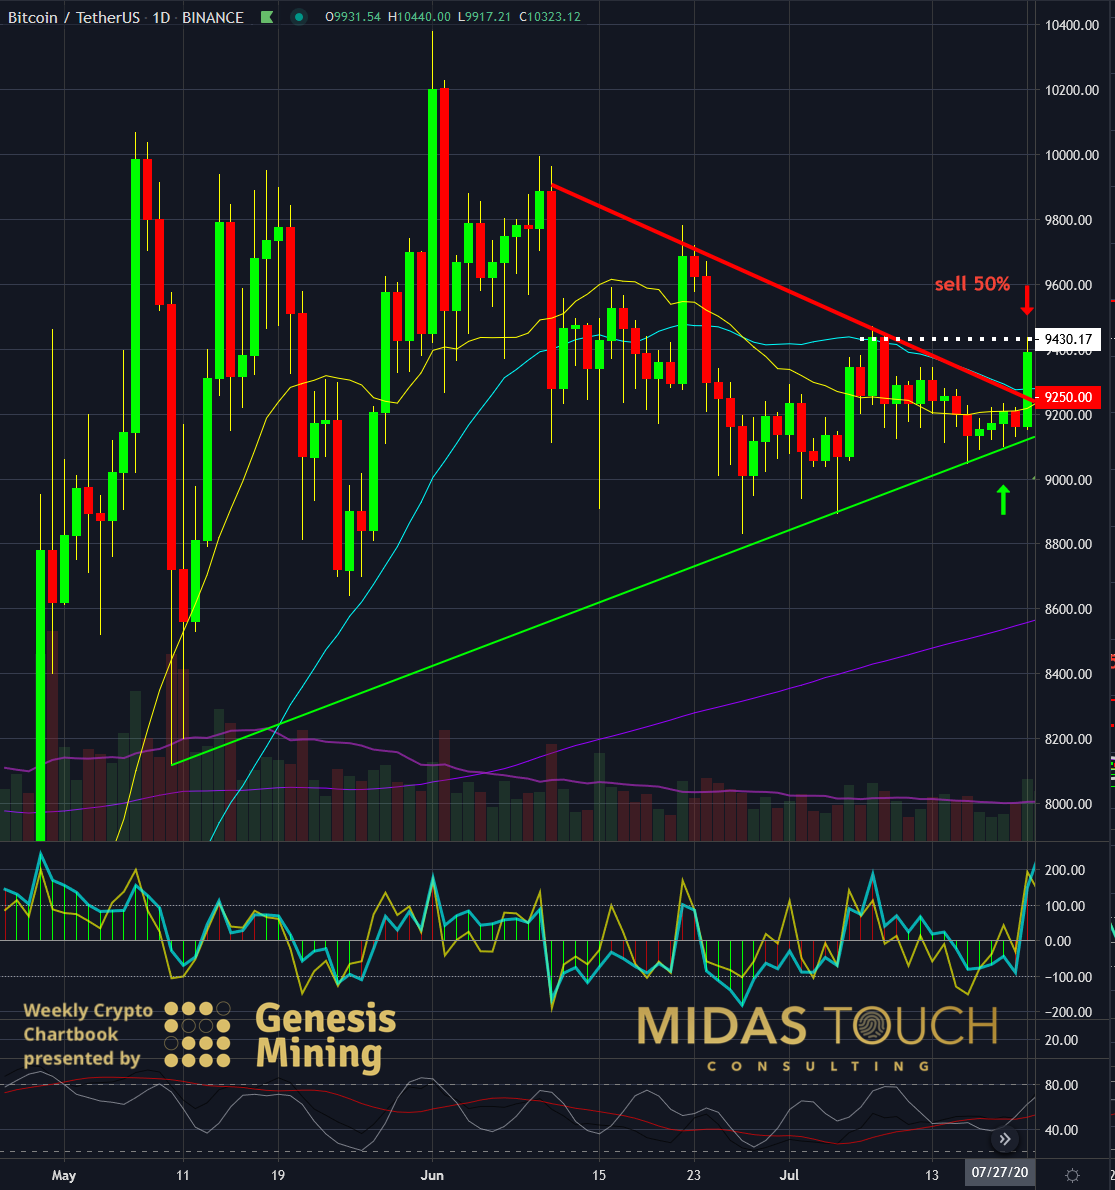 BTC-USDT, daily chart as of July 21st, 2020